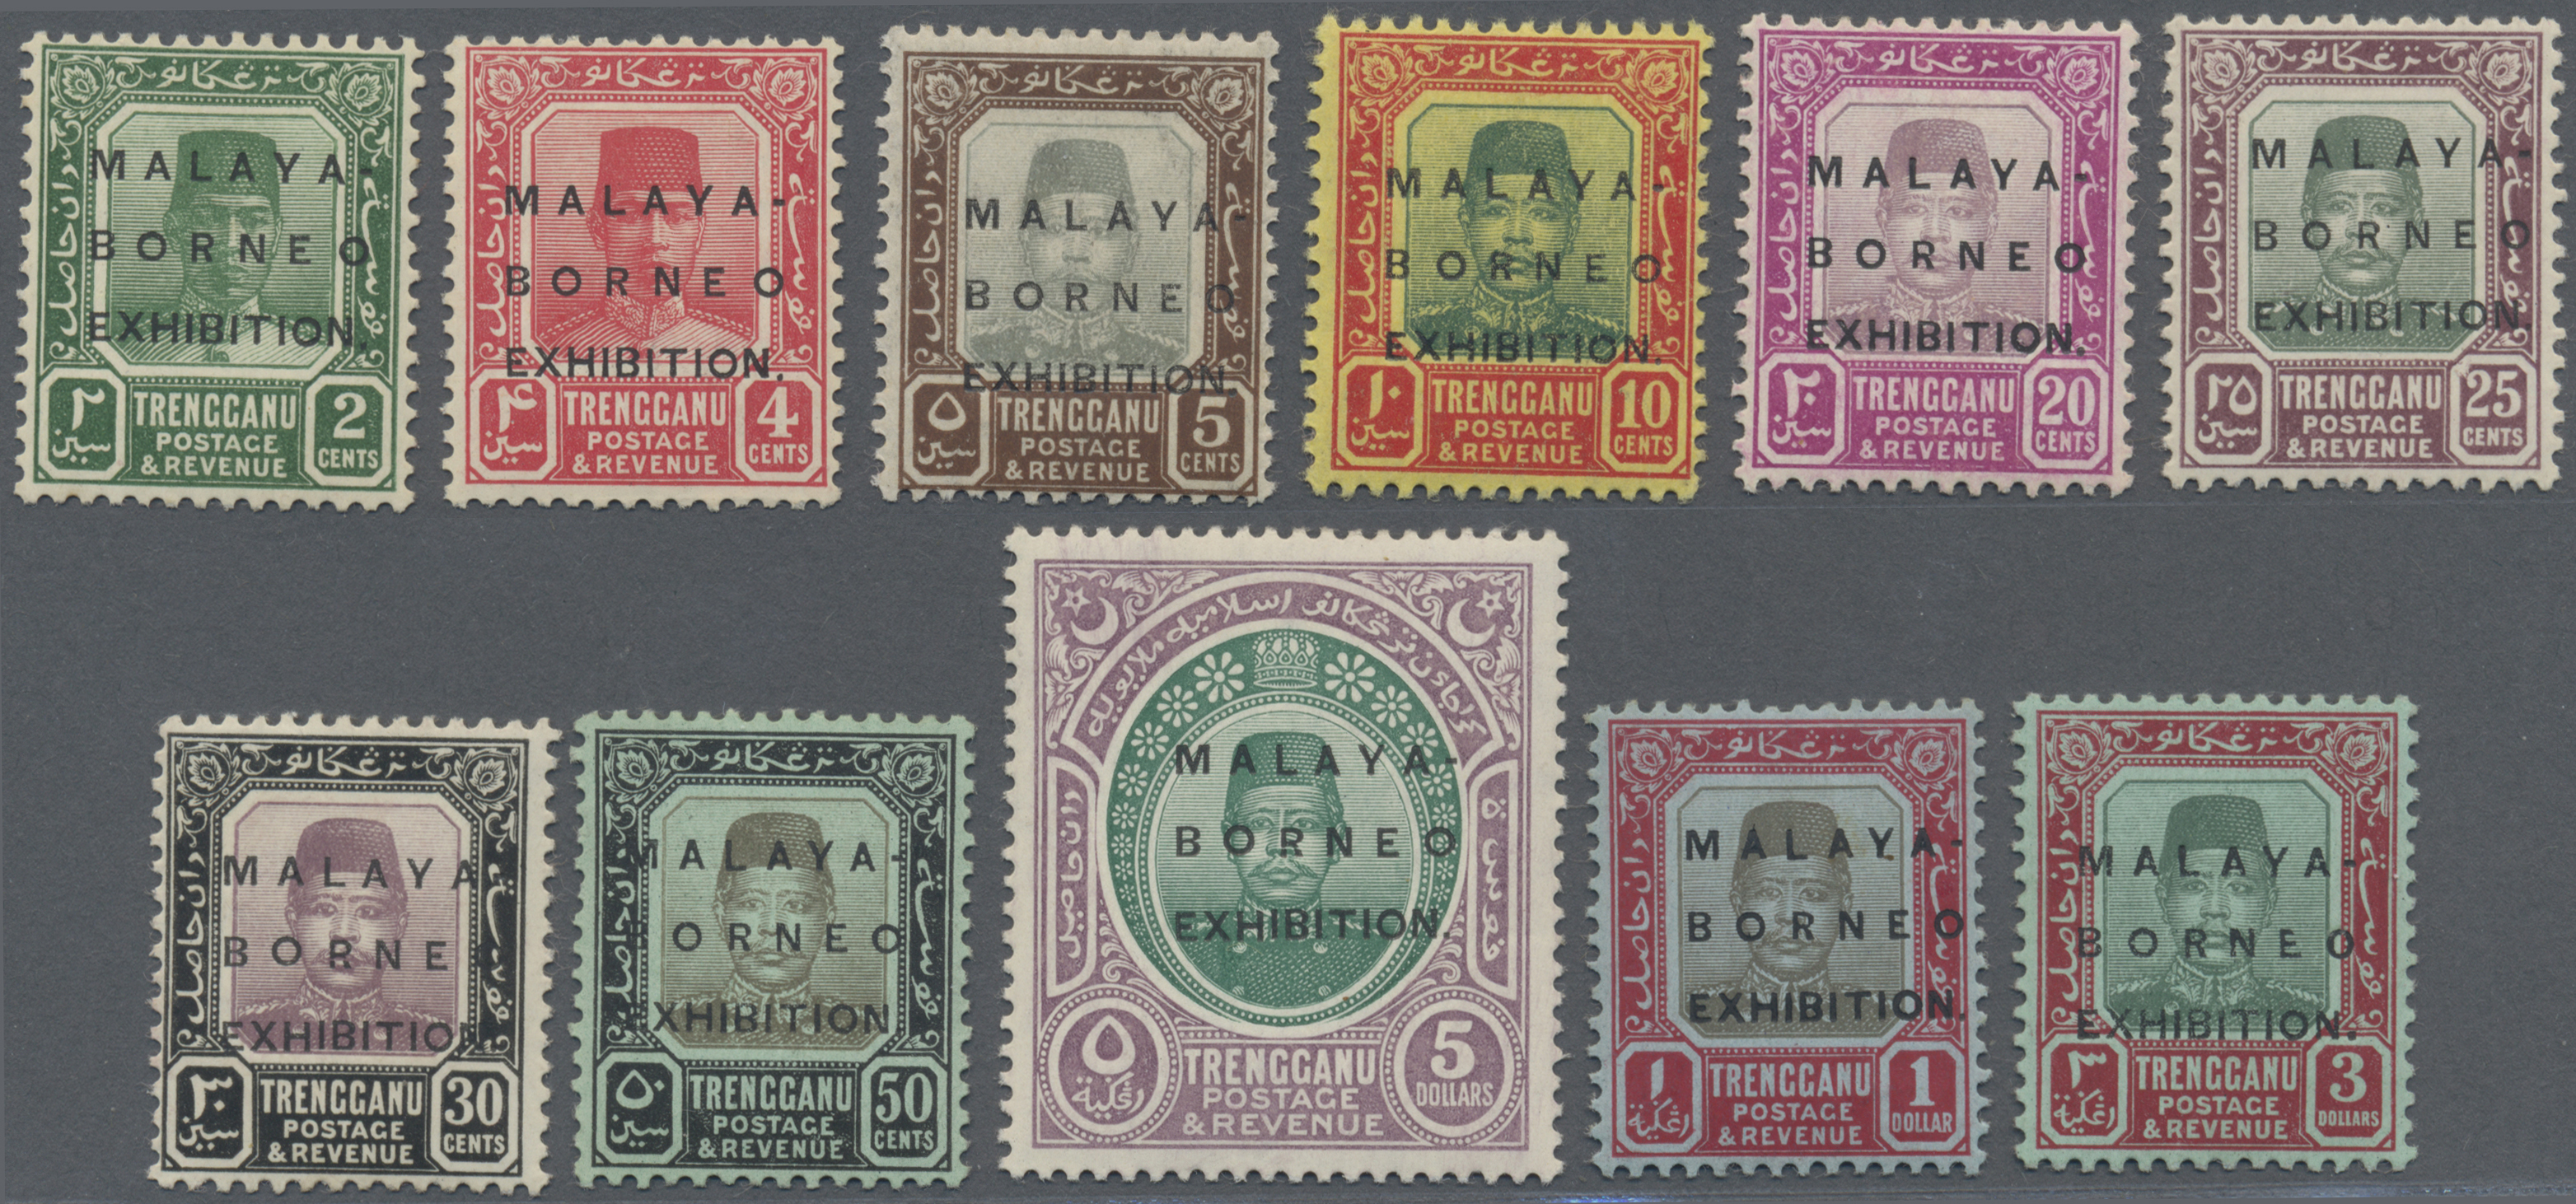 Lot 10129 - Malaiische Staaten - Trengganu  -  Auktionshaus Christoph Gärtner GmbH & Co. KG Philately: ASIA single lots including Special Catalog Malaya Auction #39 Day 3